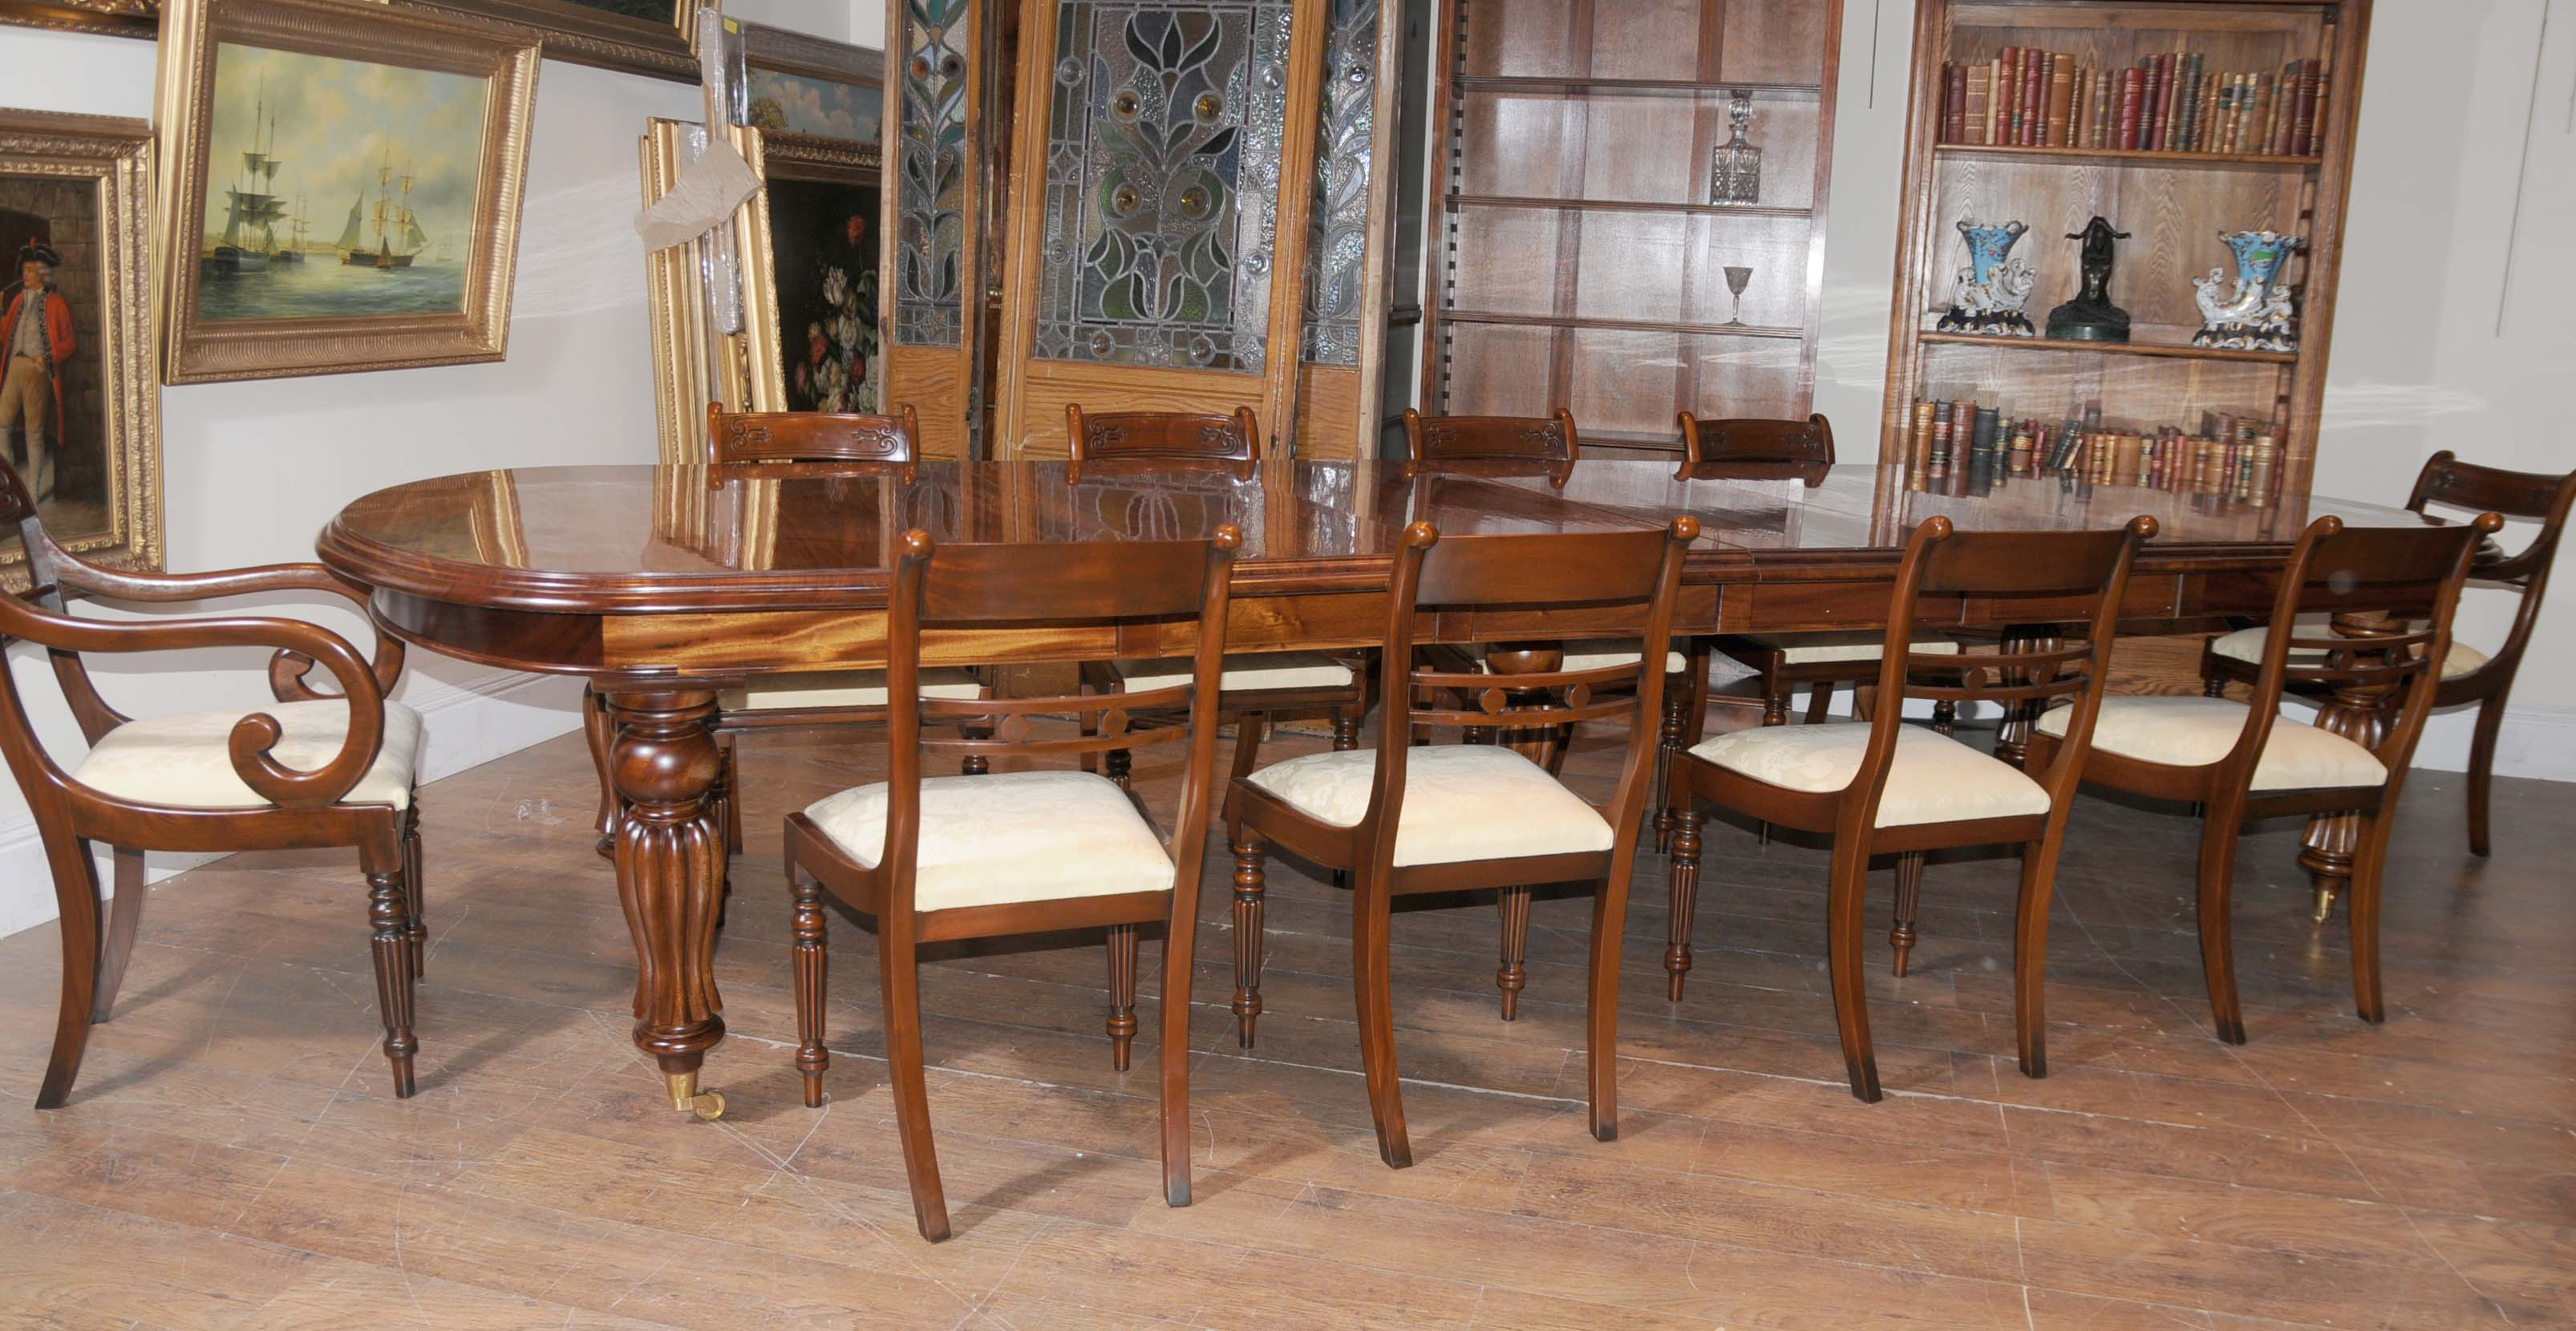 Inspirational victorian oak dining room chairs light of dining room - Images of dining room sets ...